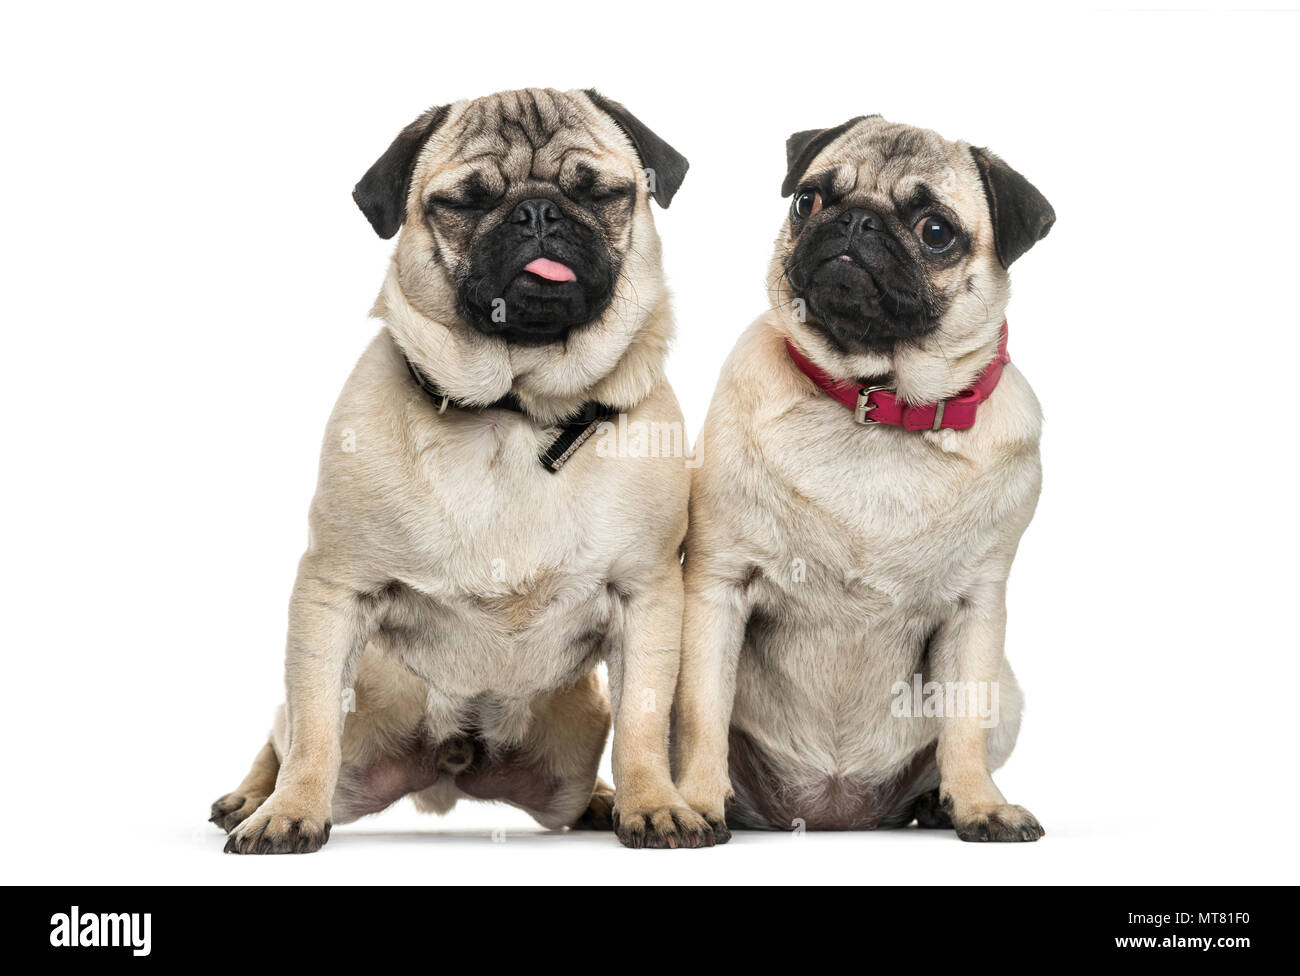 Two Pug dogs sitting together against white background - Stock Image